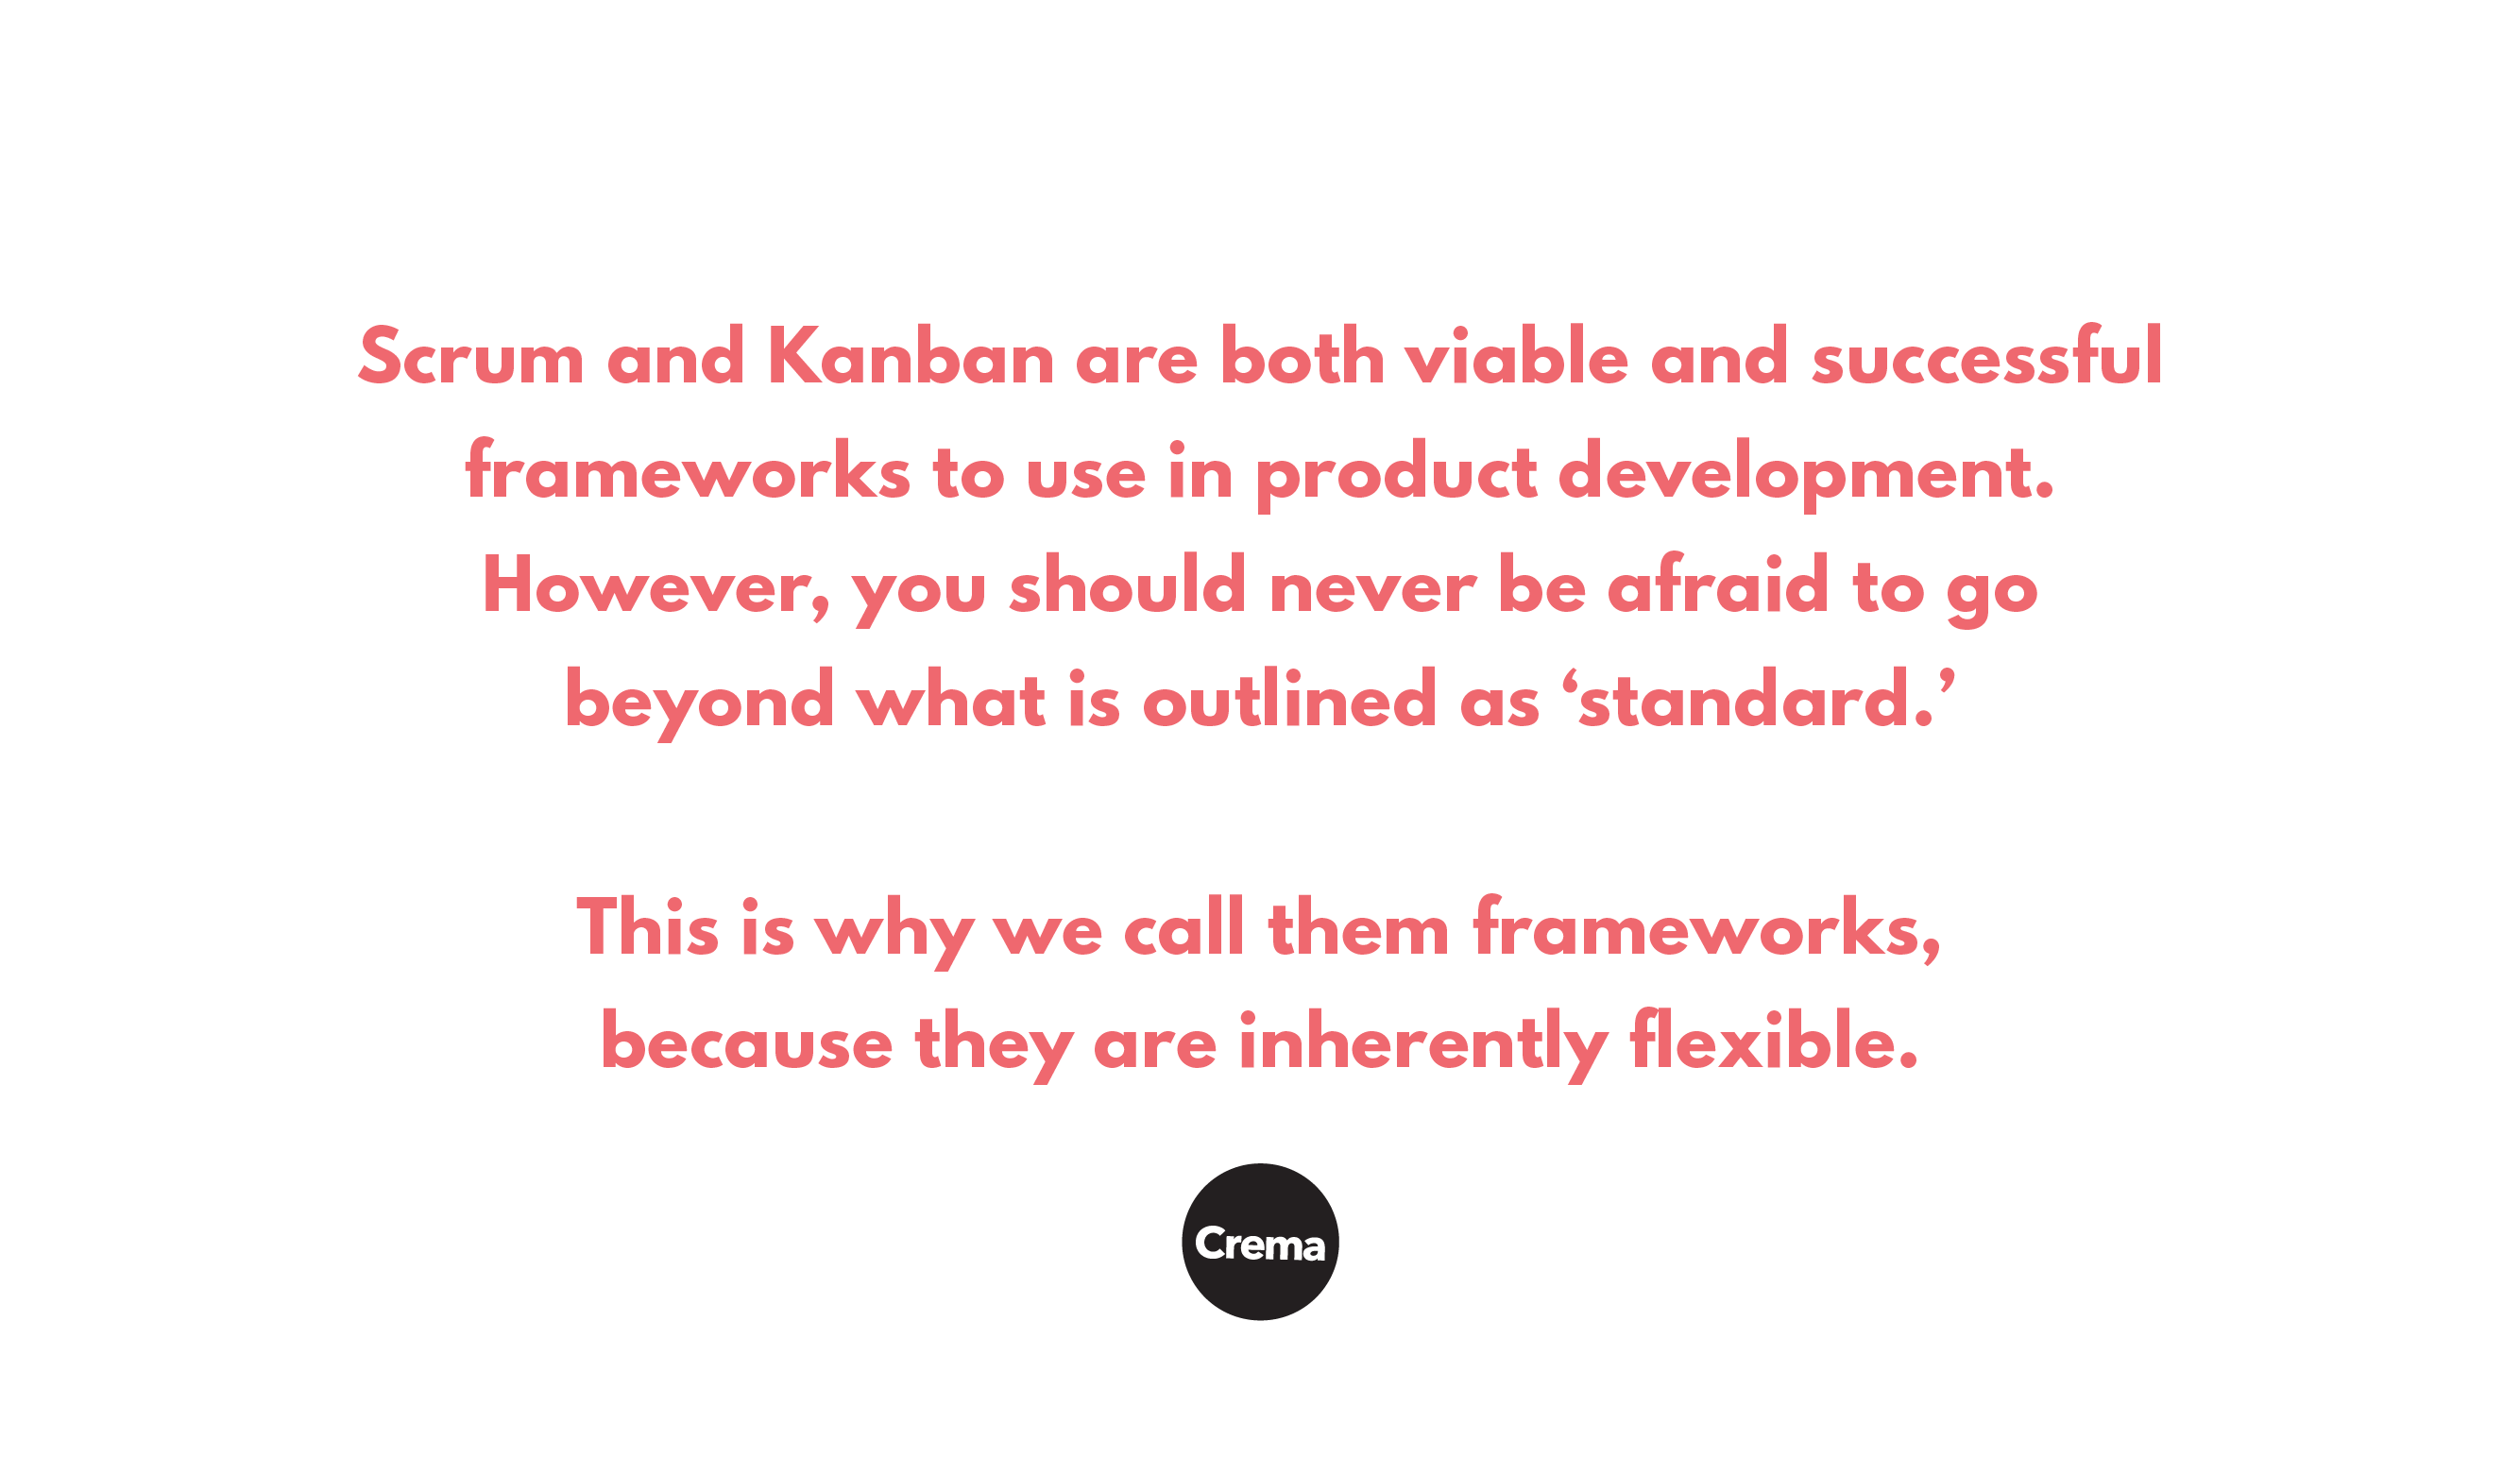 pullquote from post about going beyond standard with kanban and scrum